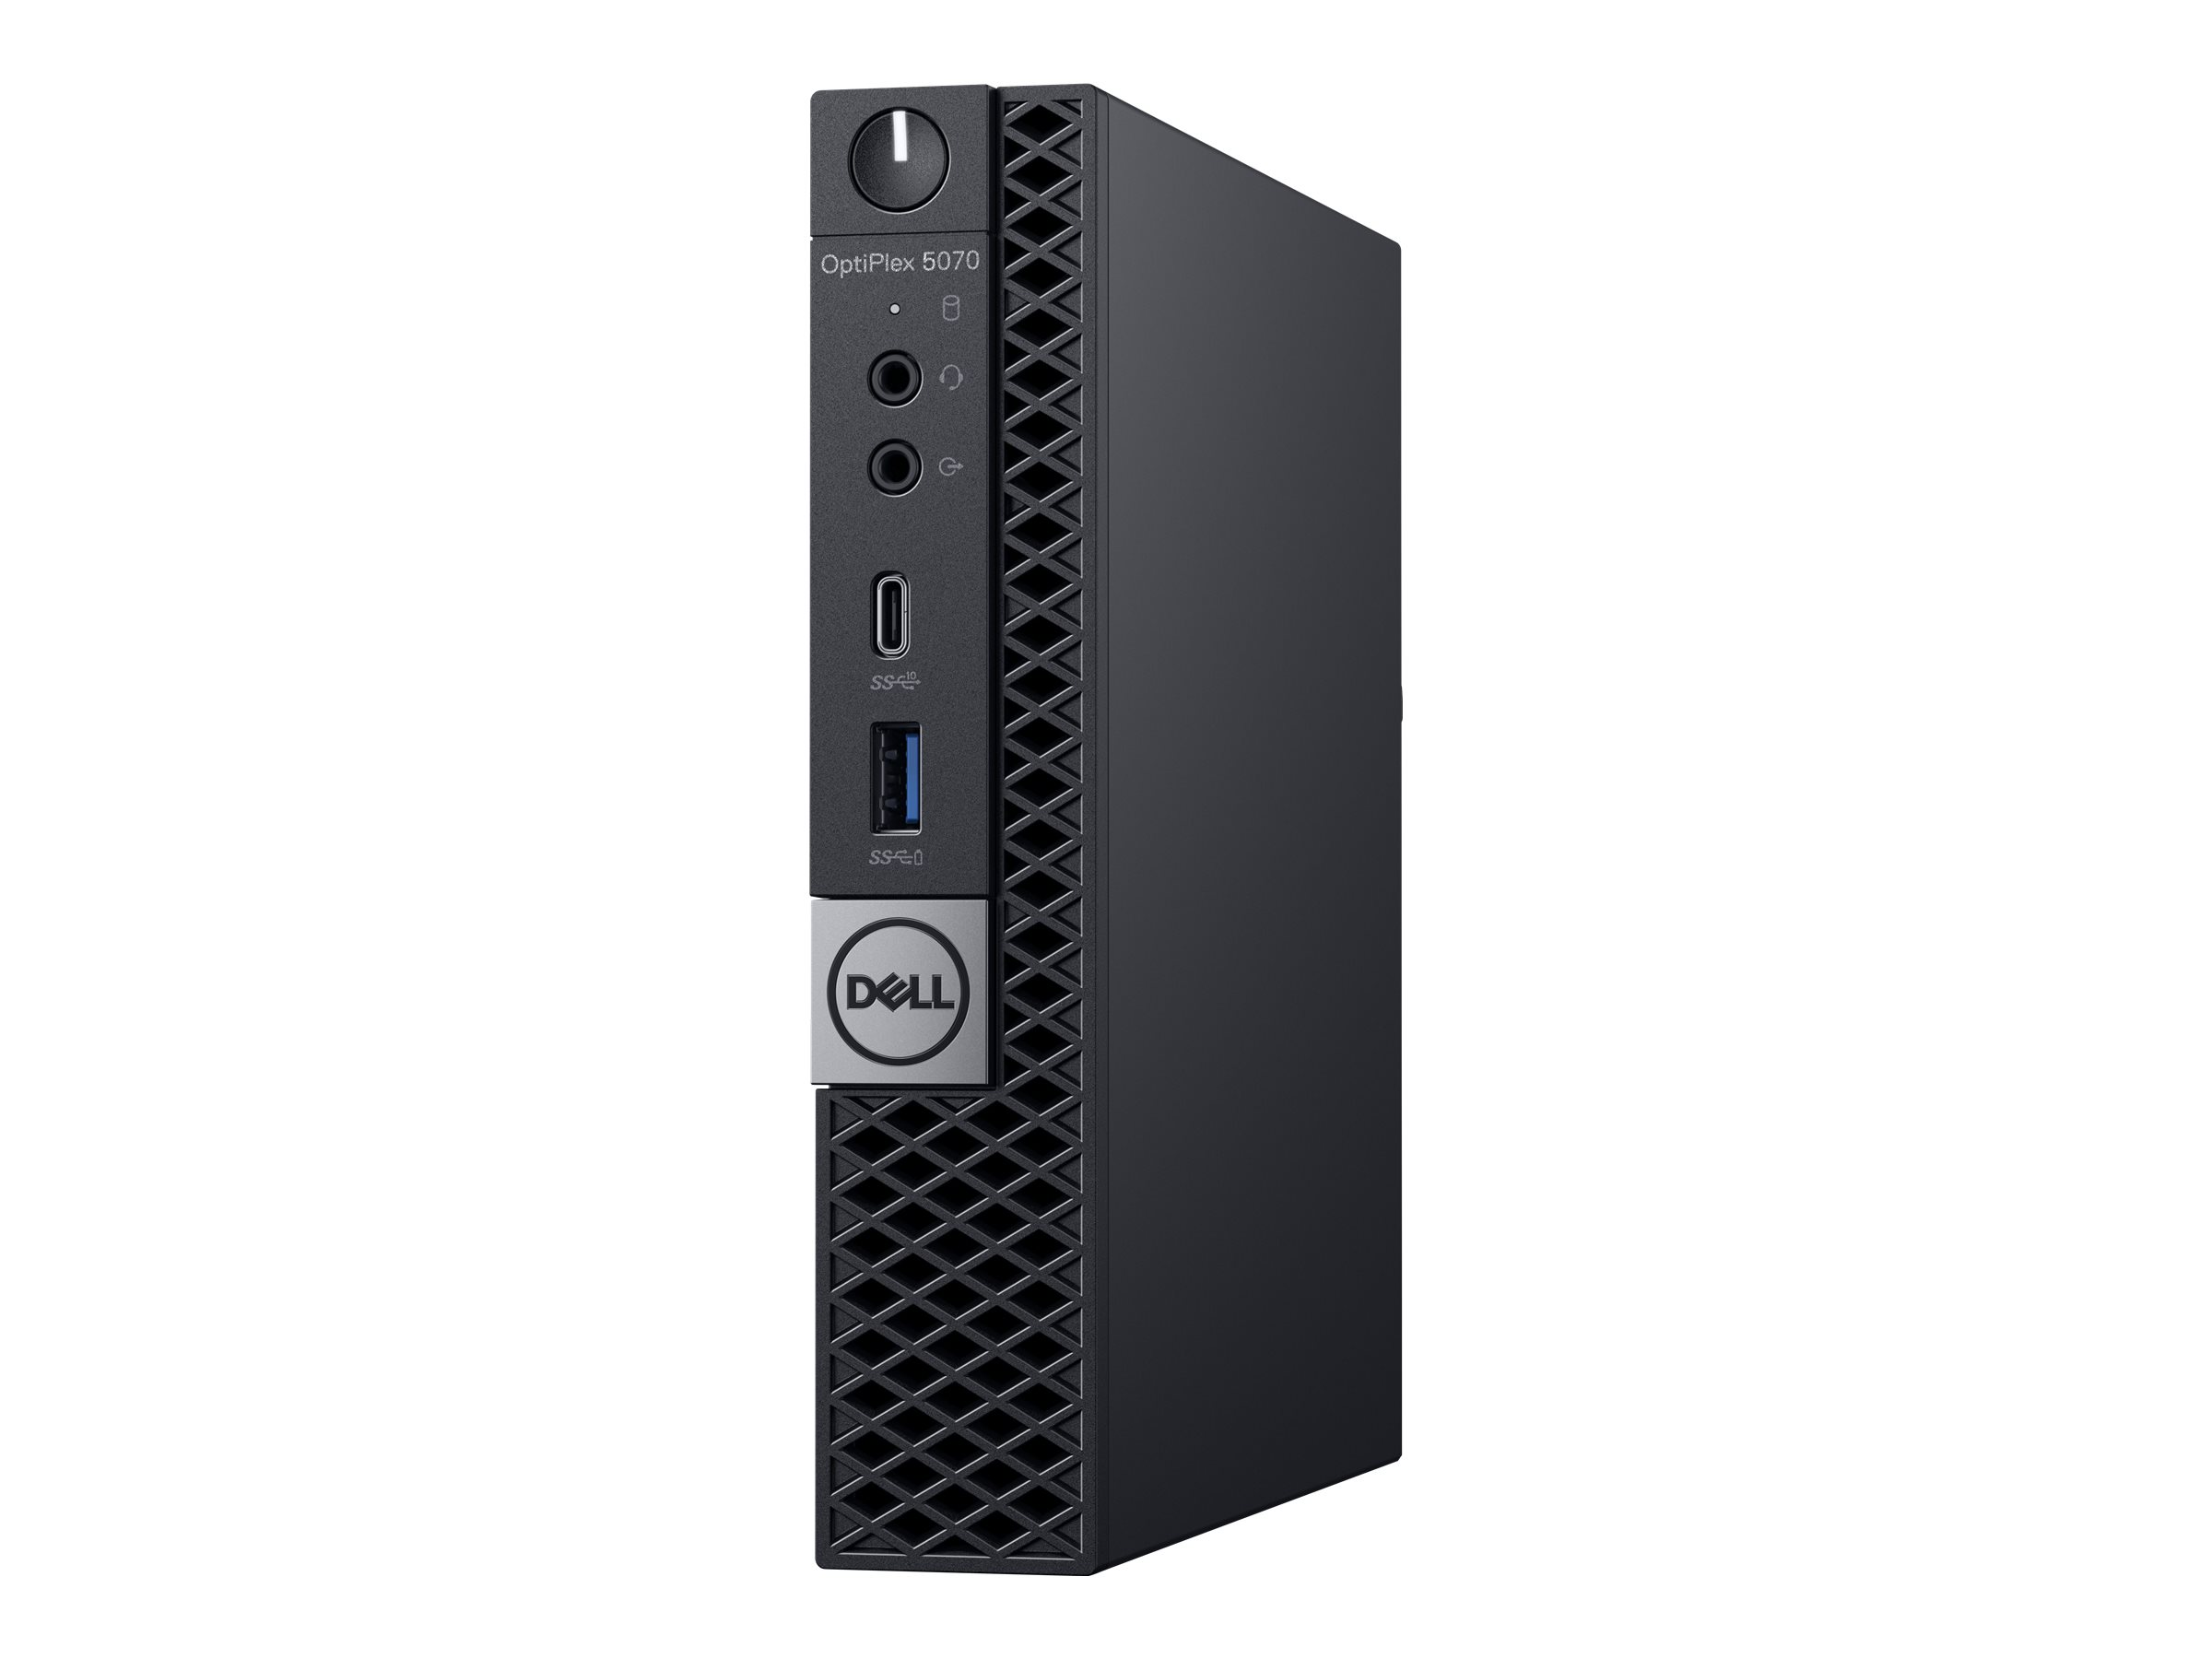 Dell OptiPlex 5070 - micro - Core i7 9700T 2 GHz - 8 GB - 256 GB - with 3-year ProSupport Plus NBD